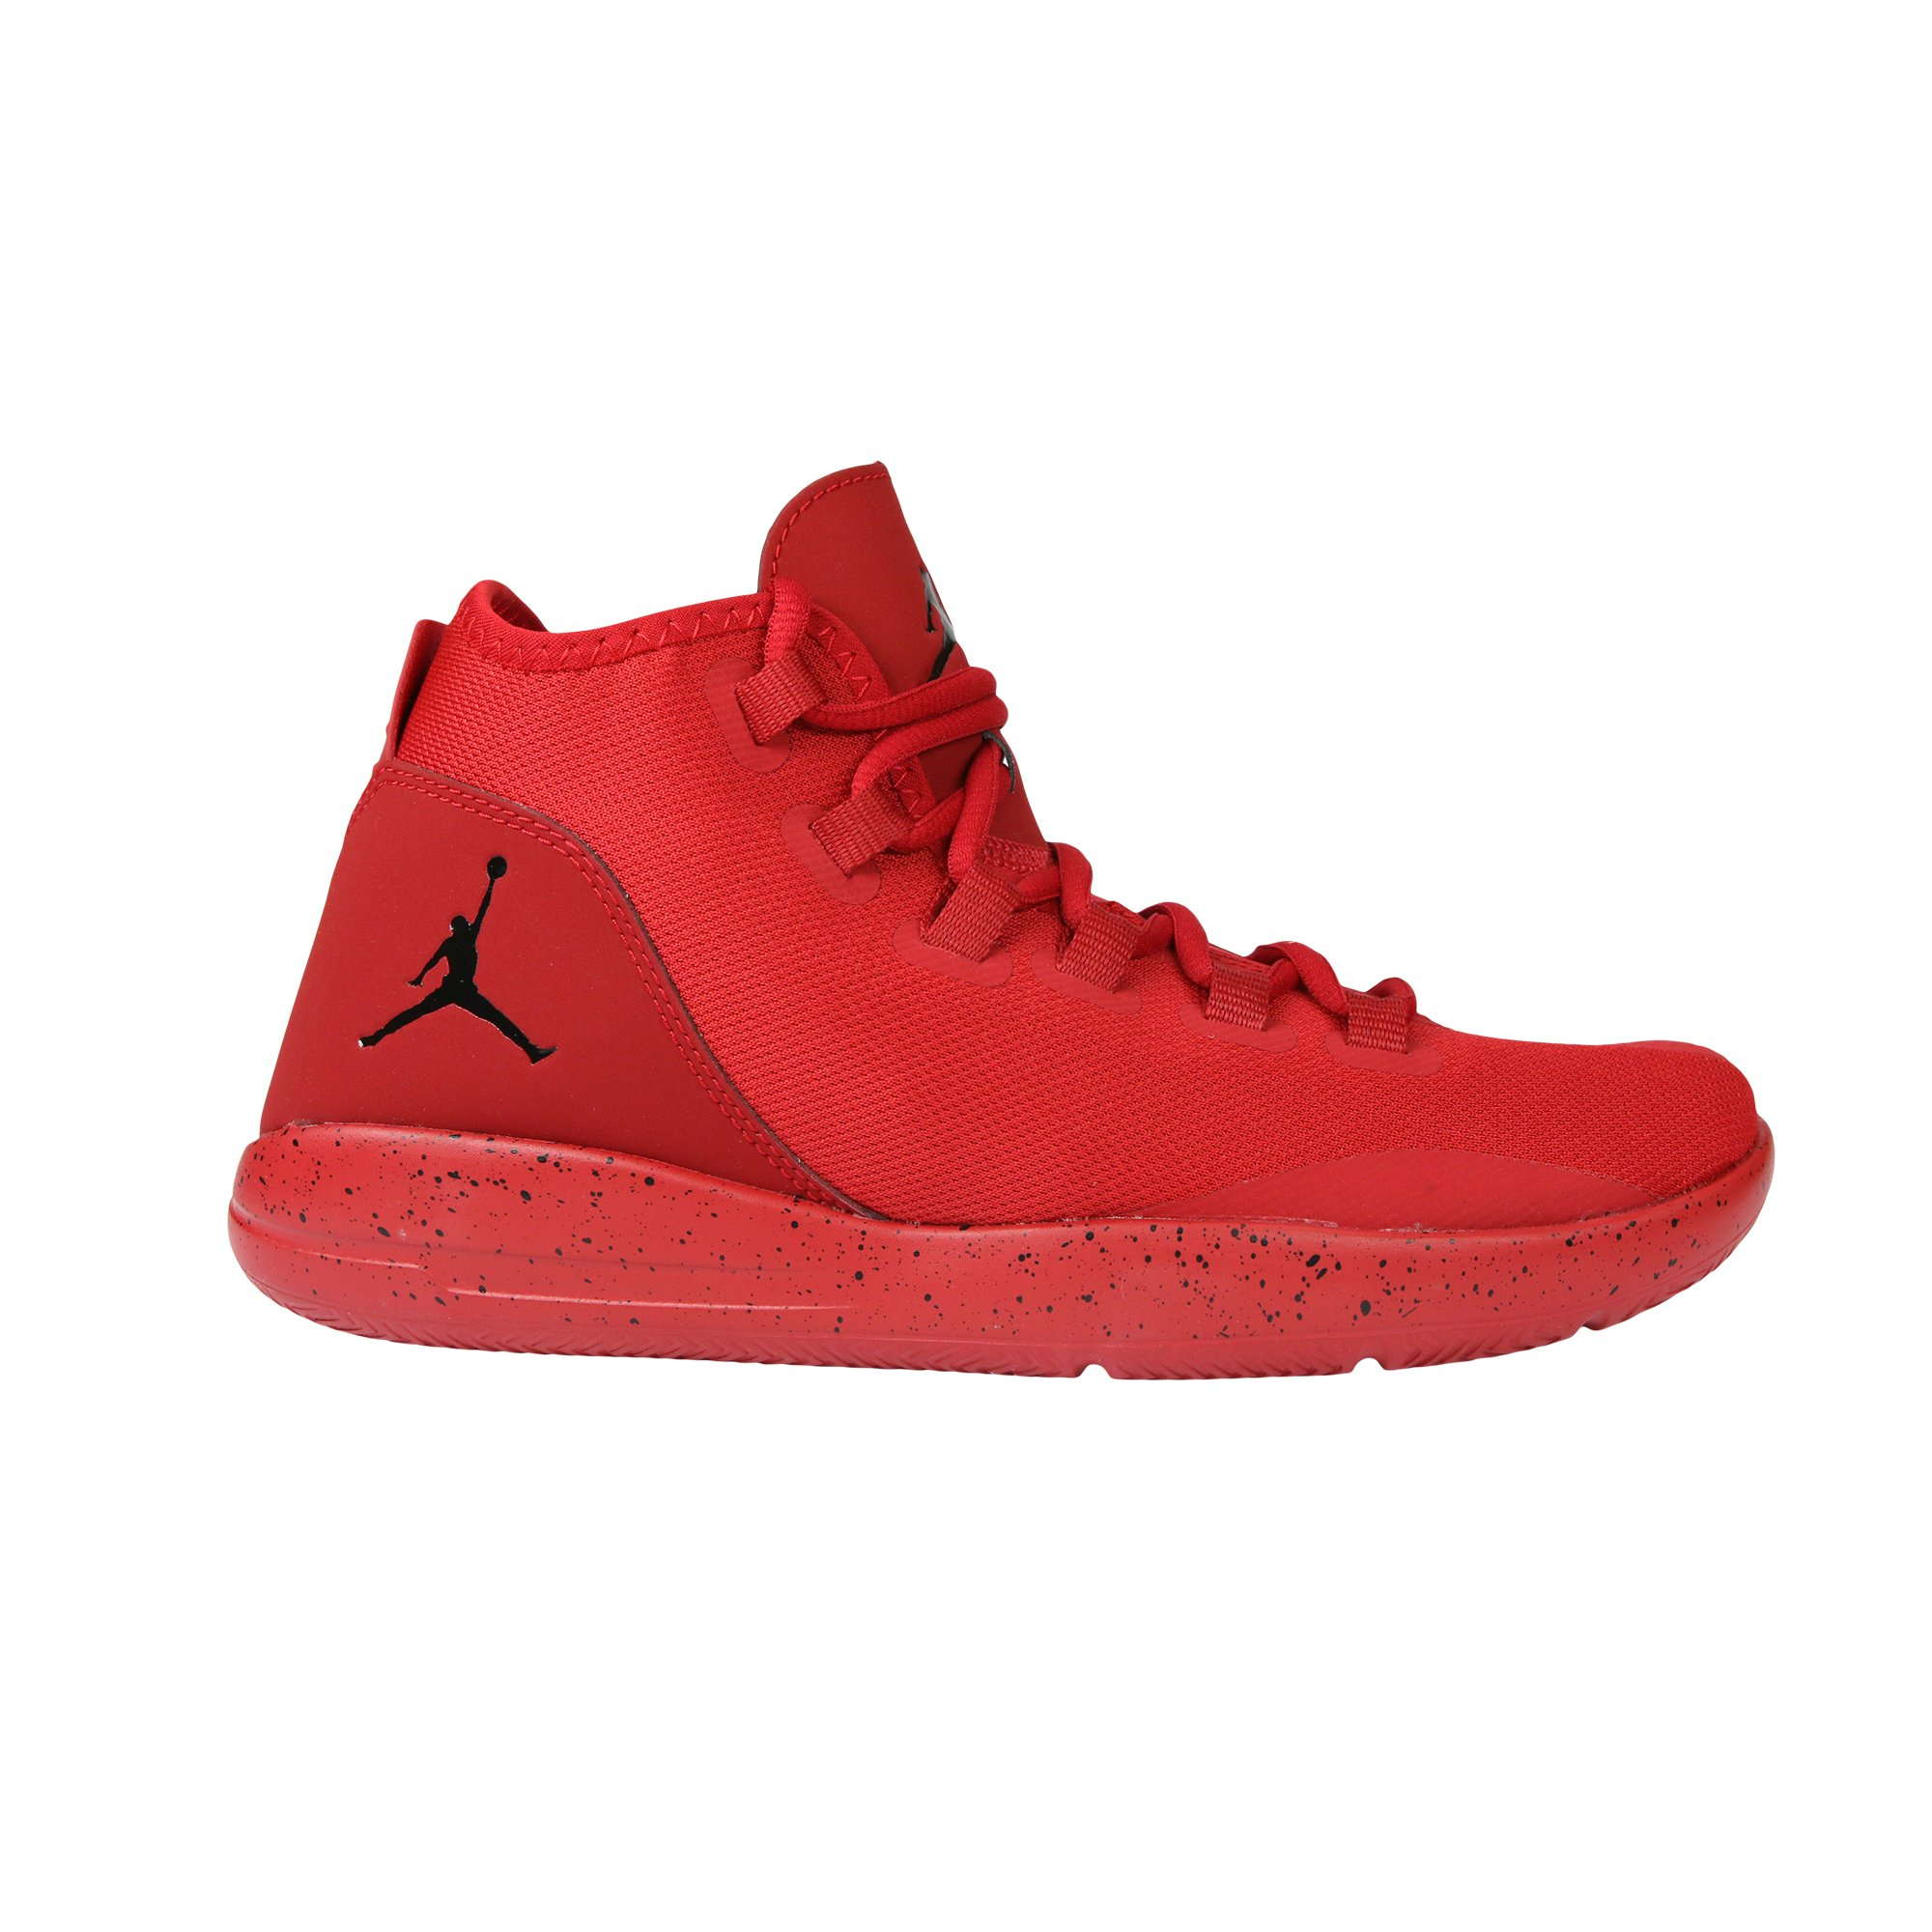 nike Air Jordan Reveal Mens Trainers 834064 Sneakers Shoes (US 11.5, gym red black 601)